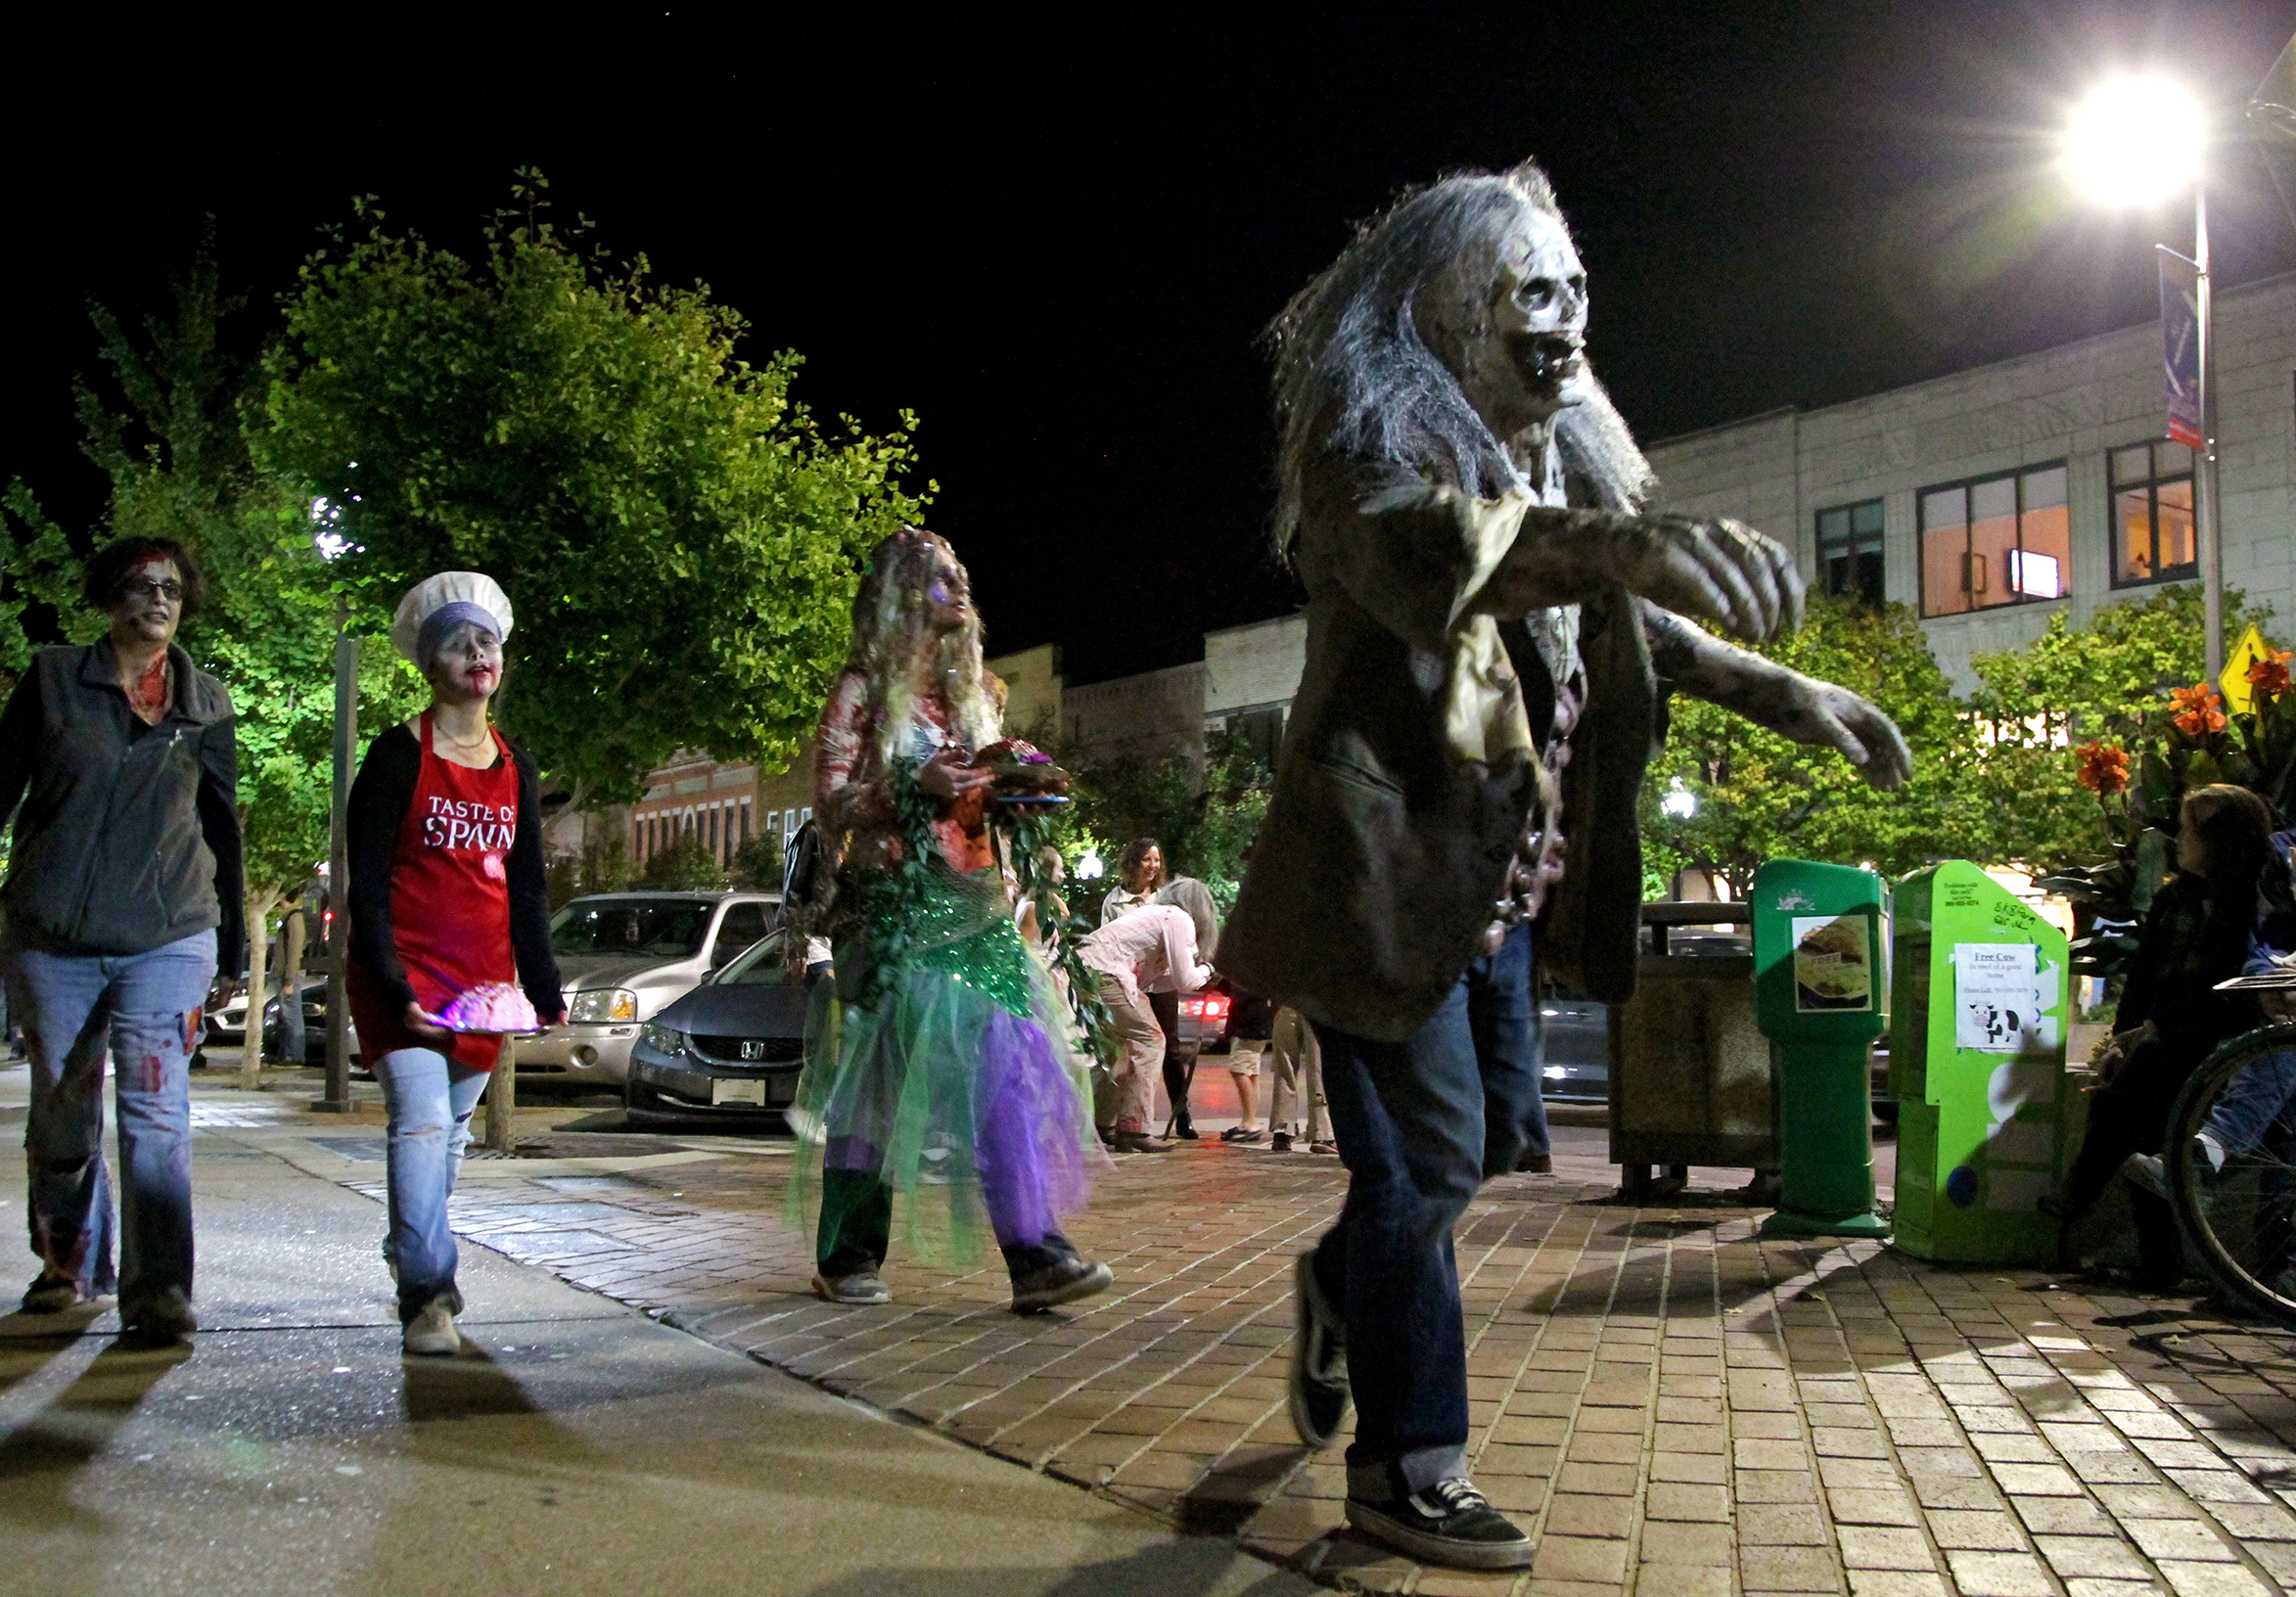 Zombies walk along Massachusetts as part of the Zombie Walk on Oct. 20 in downtown Lawrence. Image by Chad Phillips.